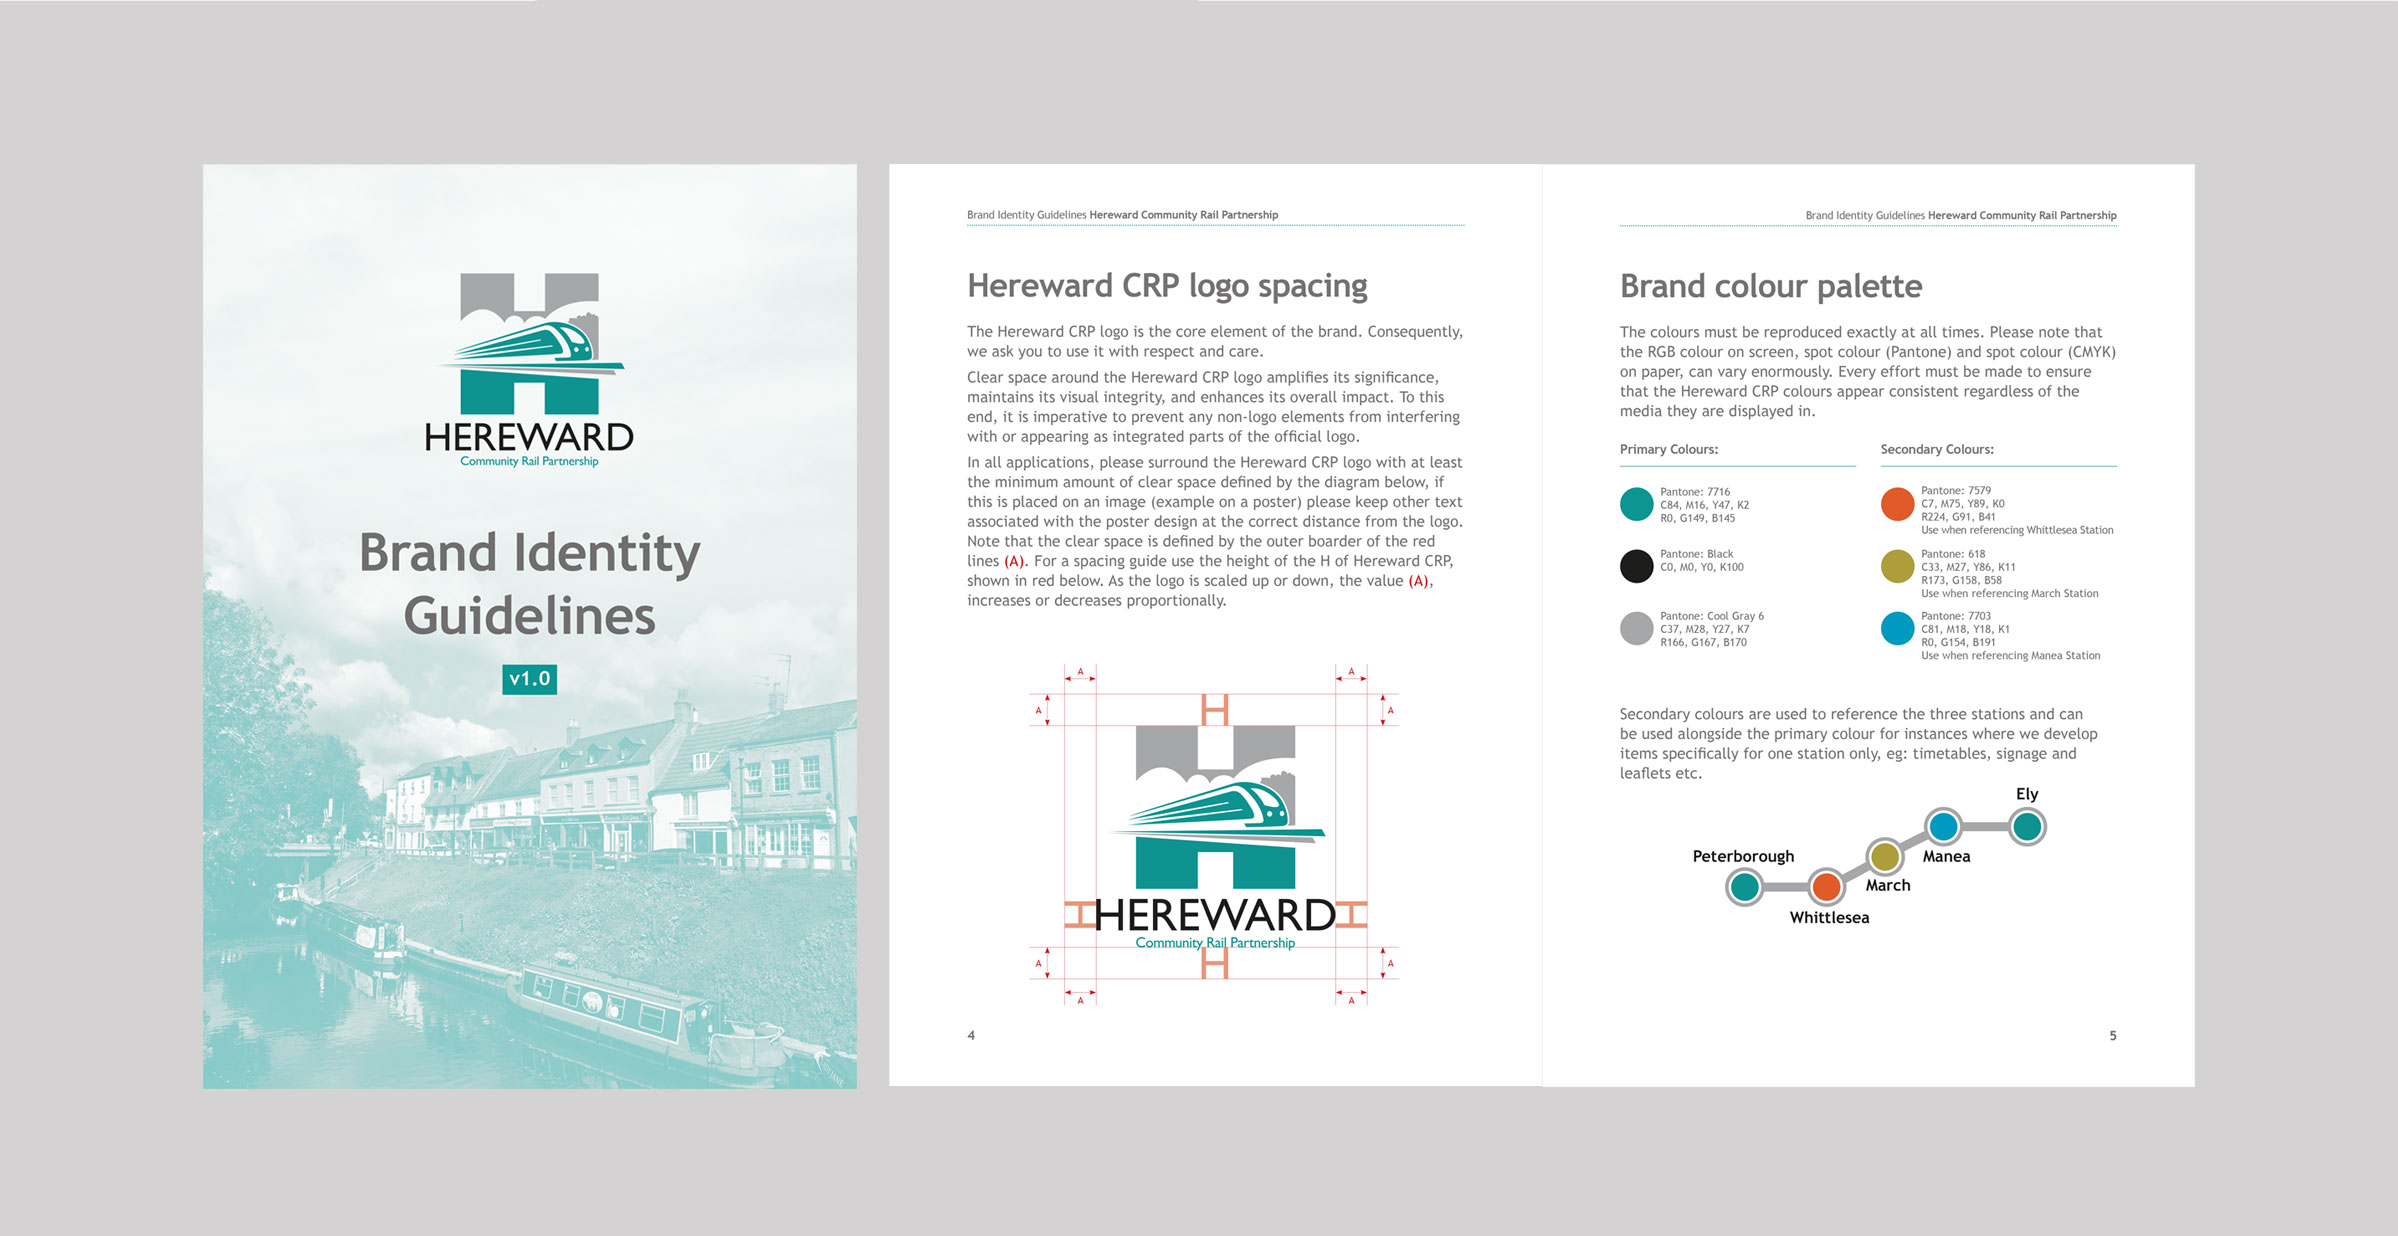 Hereward CRP brand guidelines literature